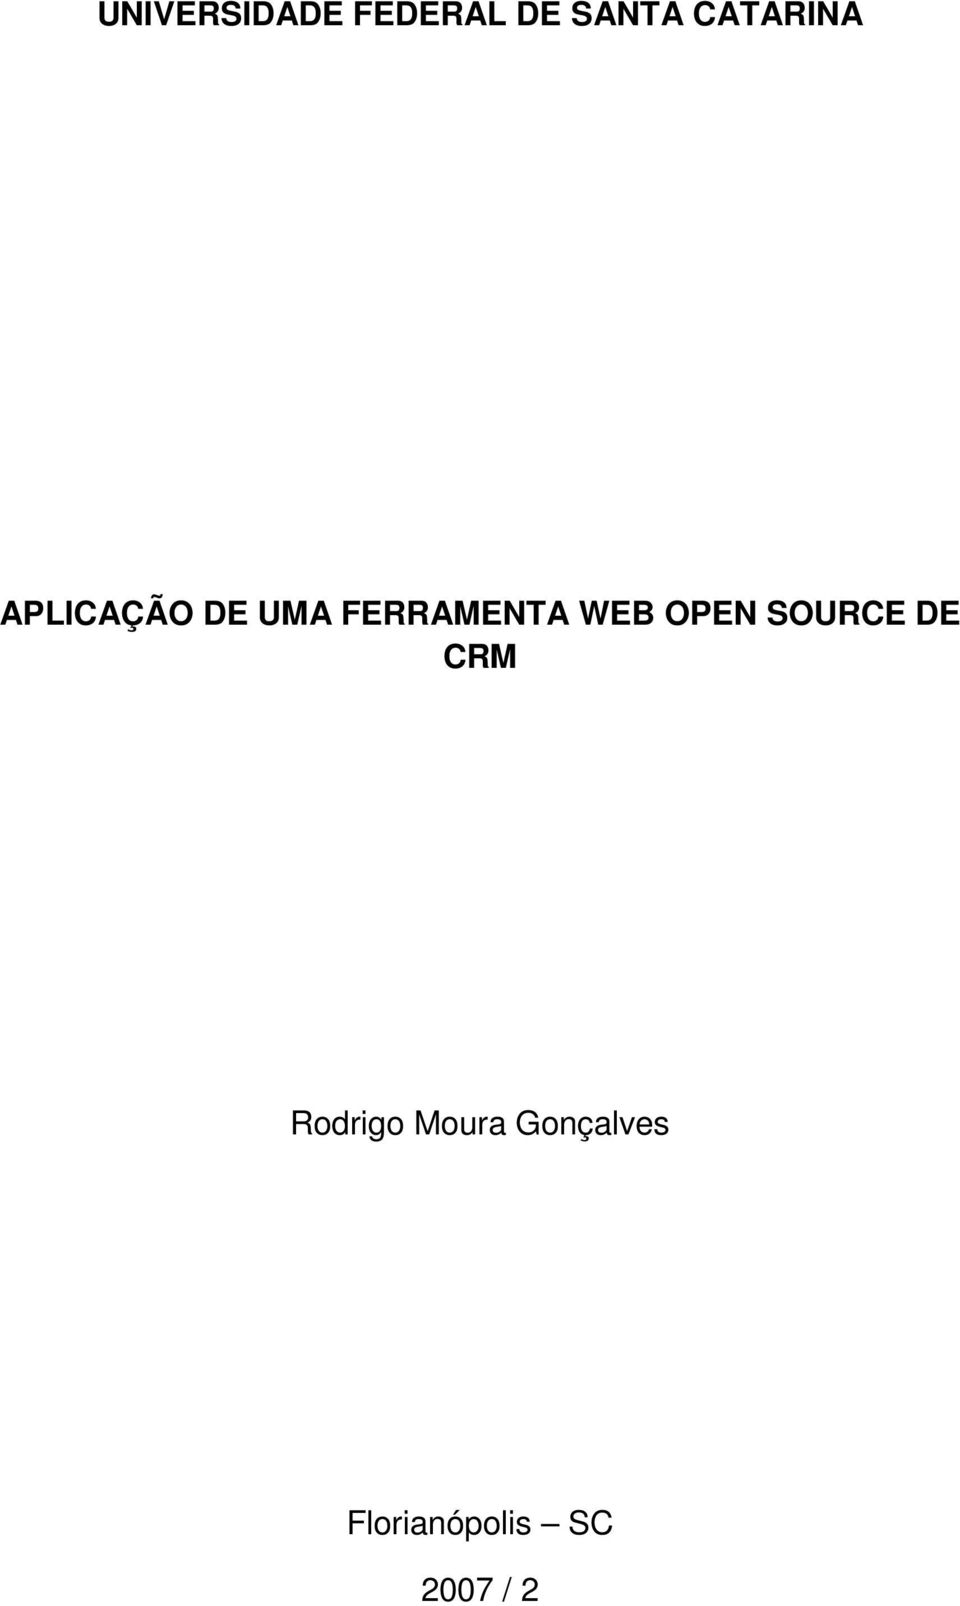 FERRAMENTA WEB OPEN SOURCE DE CRM